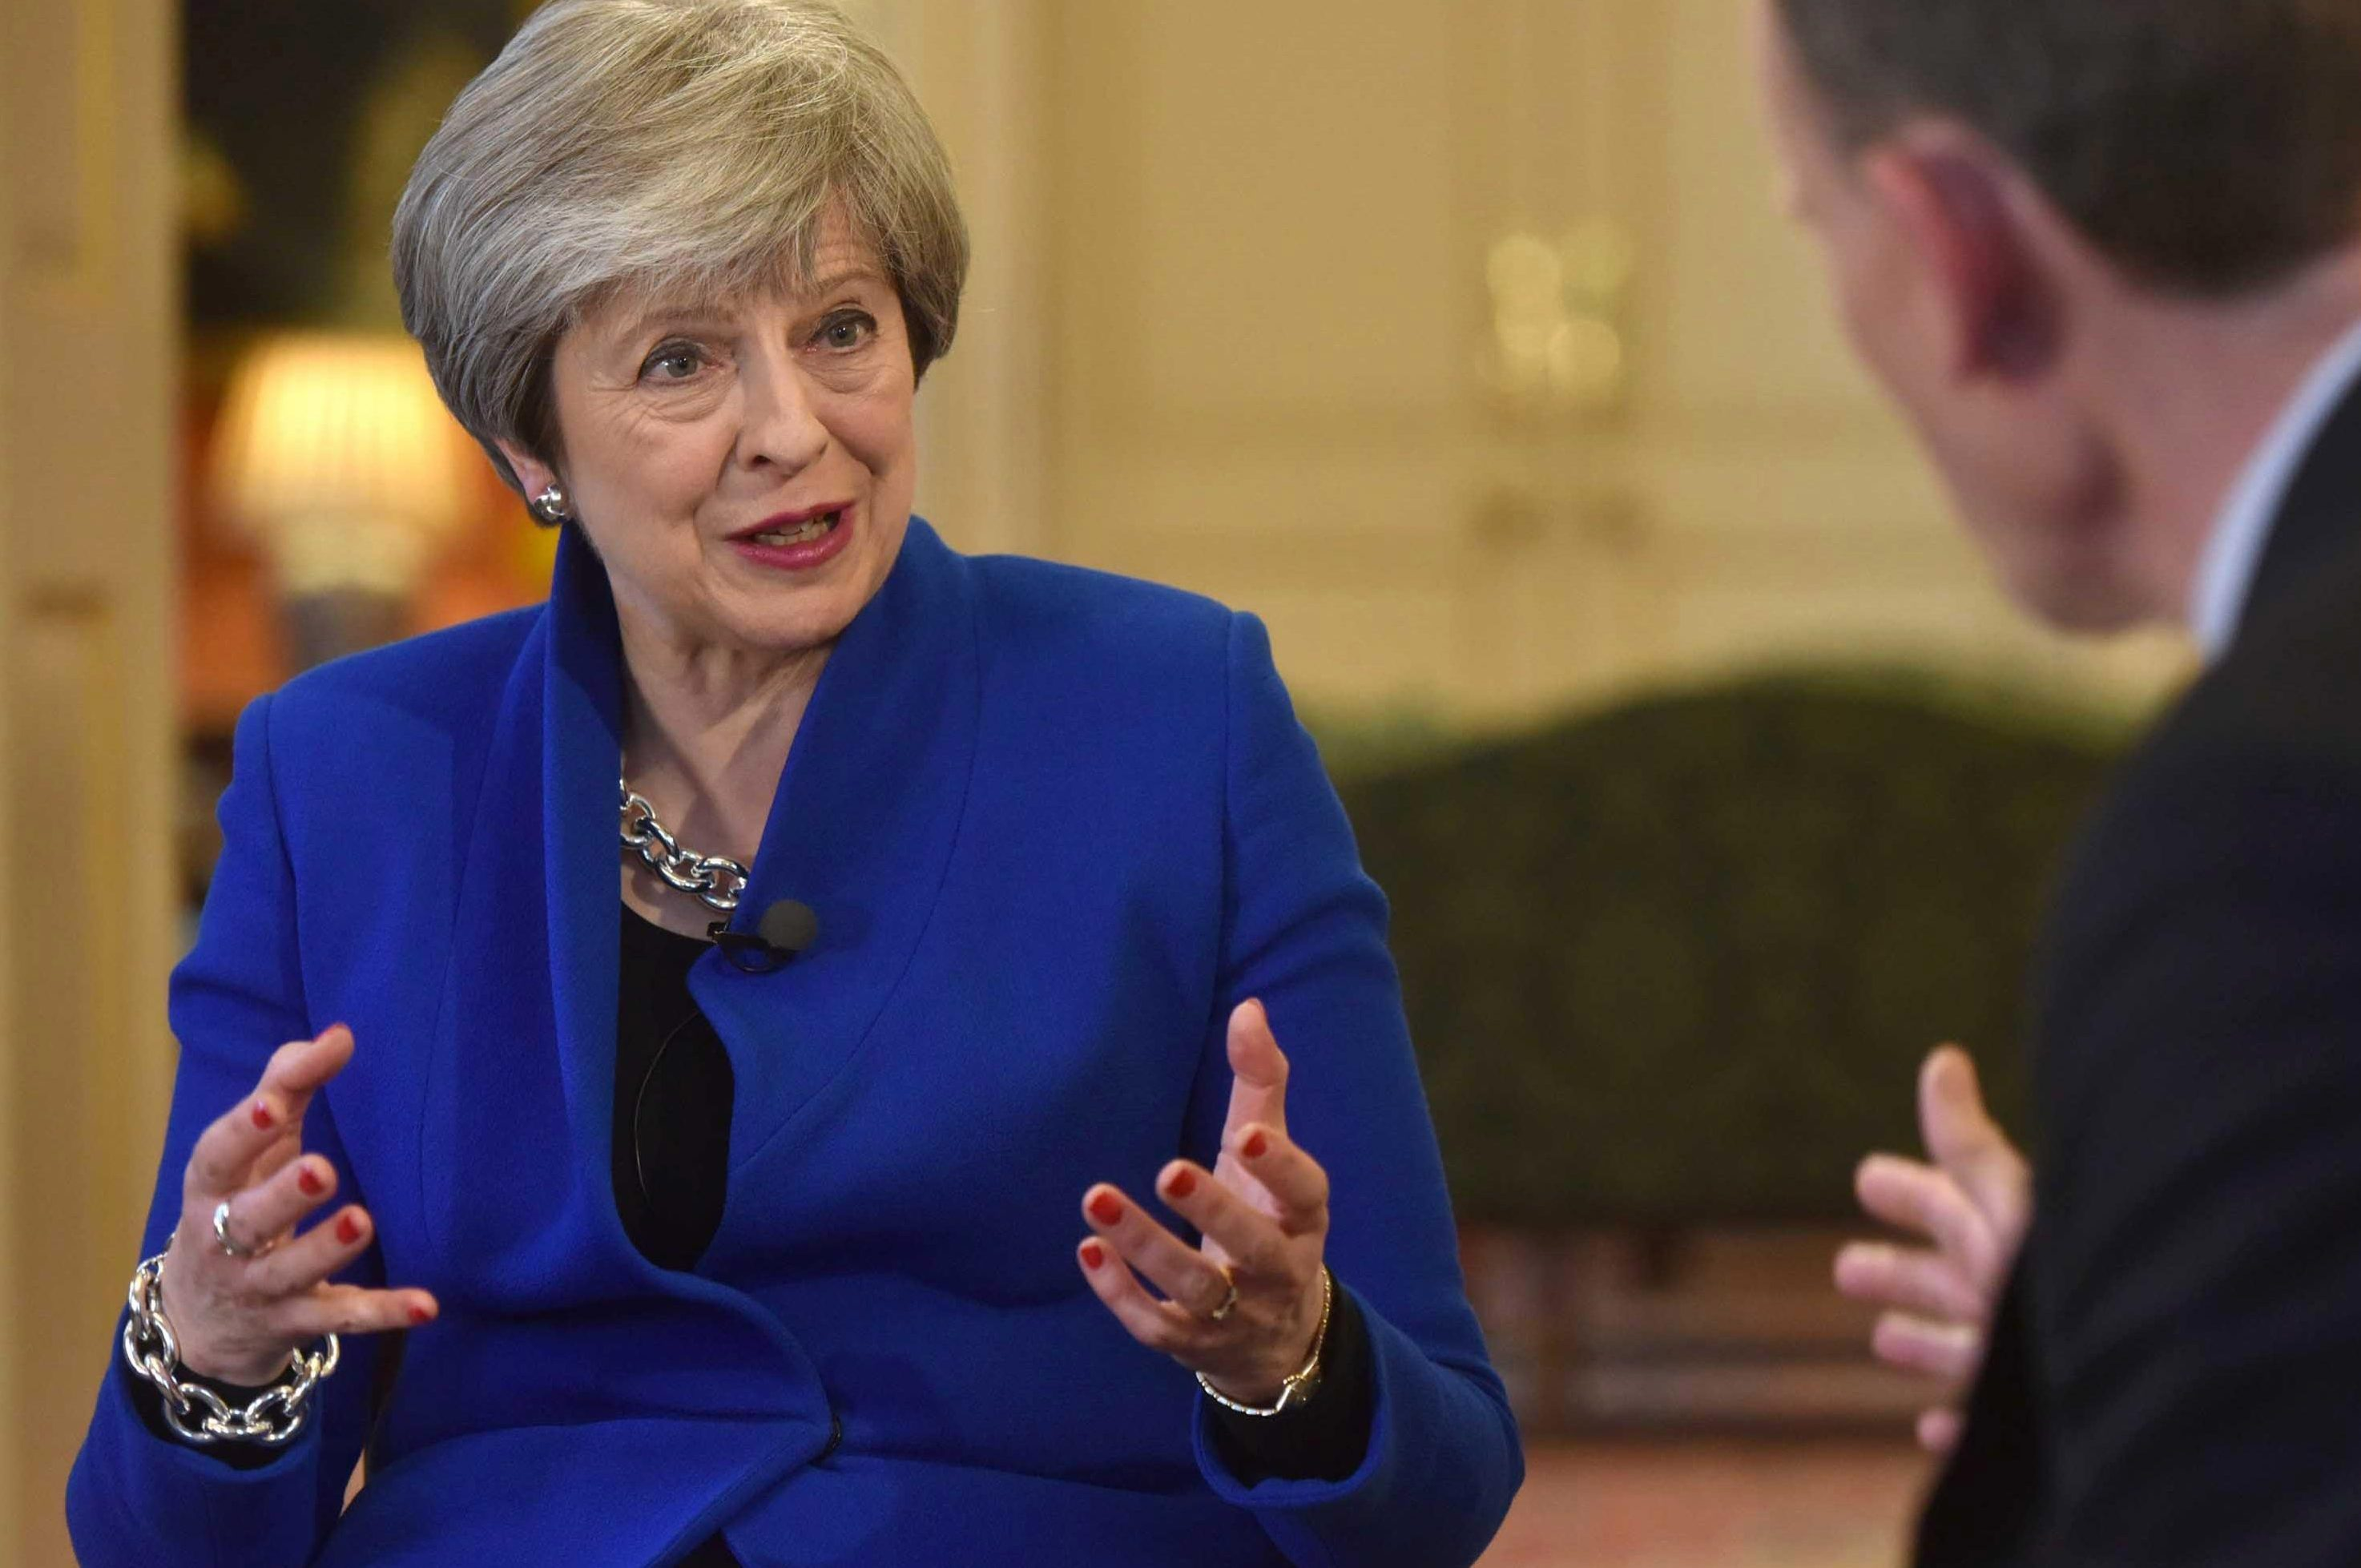 Theresa May says 'it's important to be straight with people' as she defends her blunt 'Road to Brexit' speech